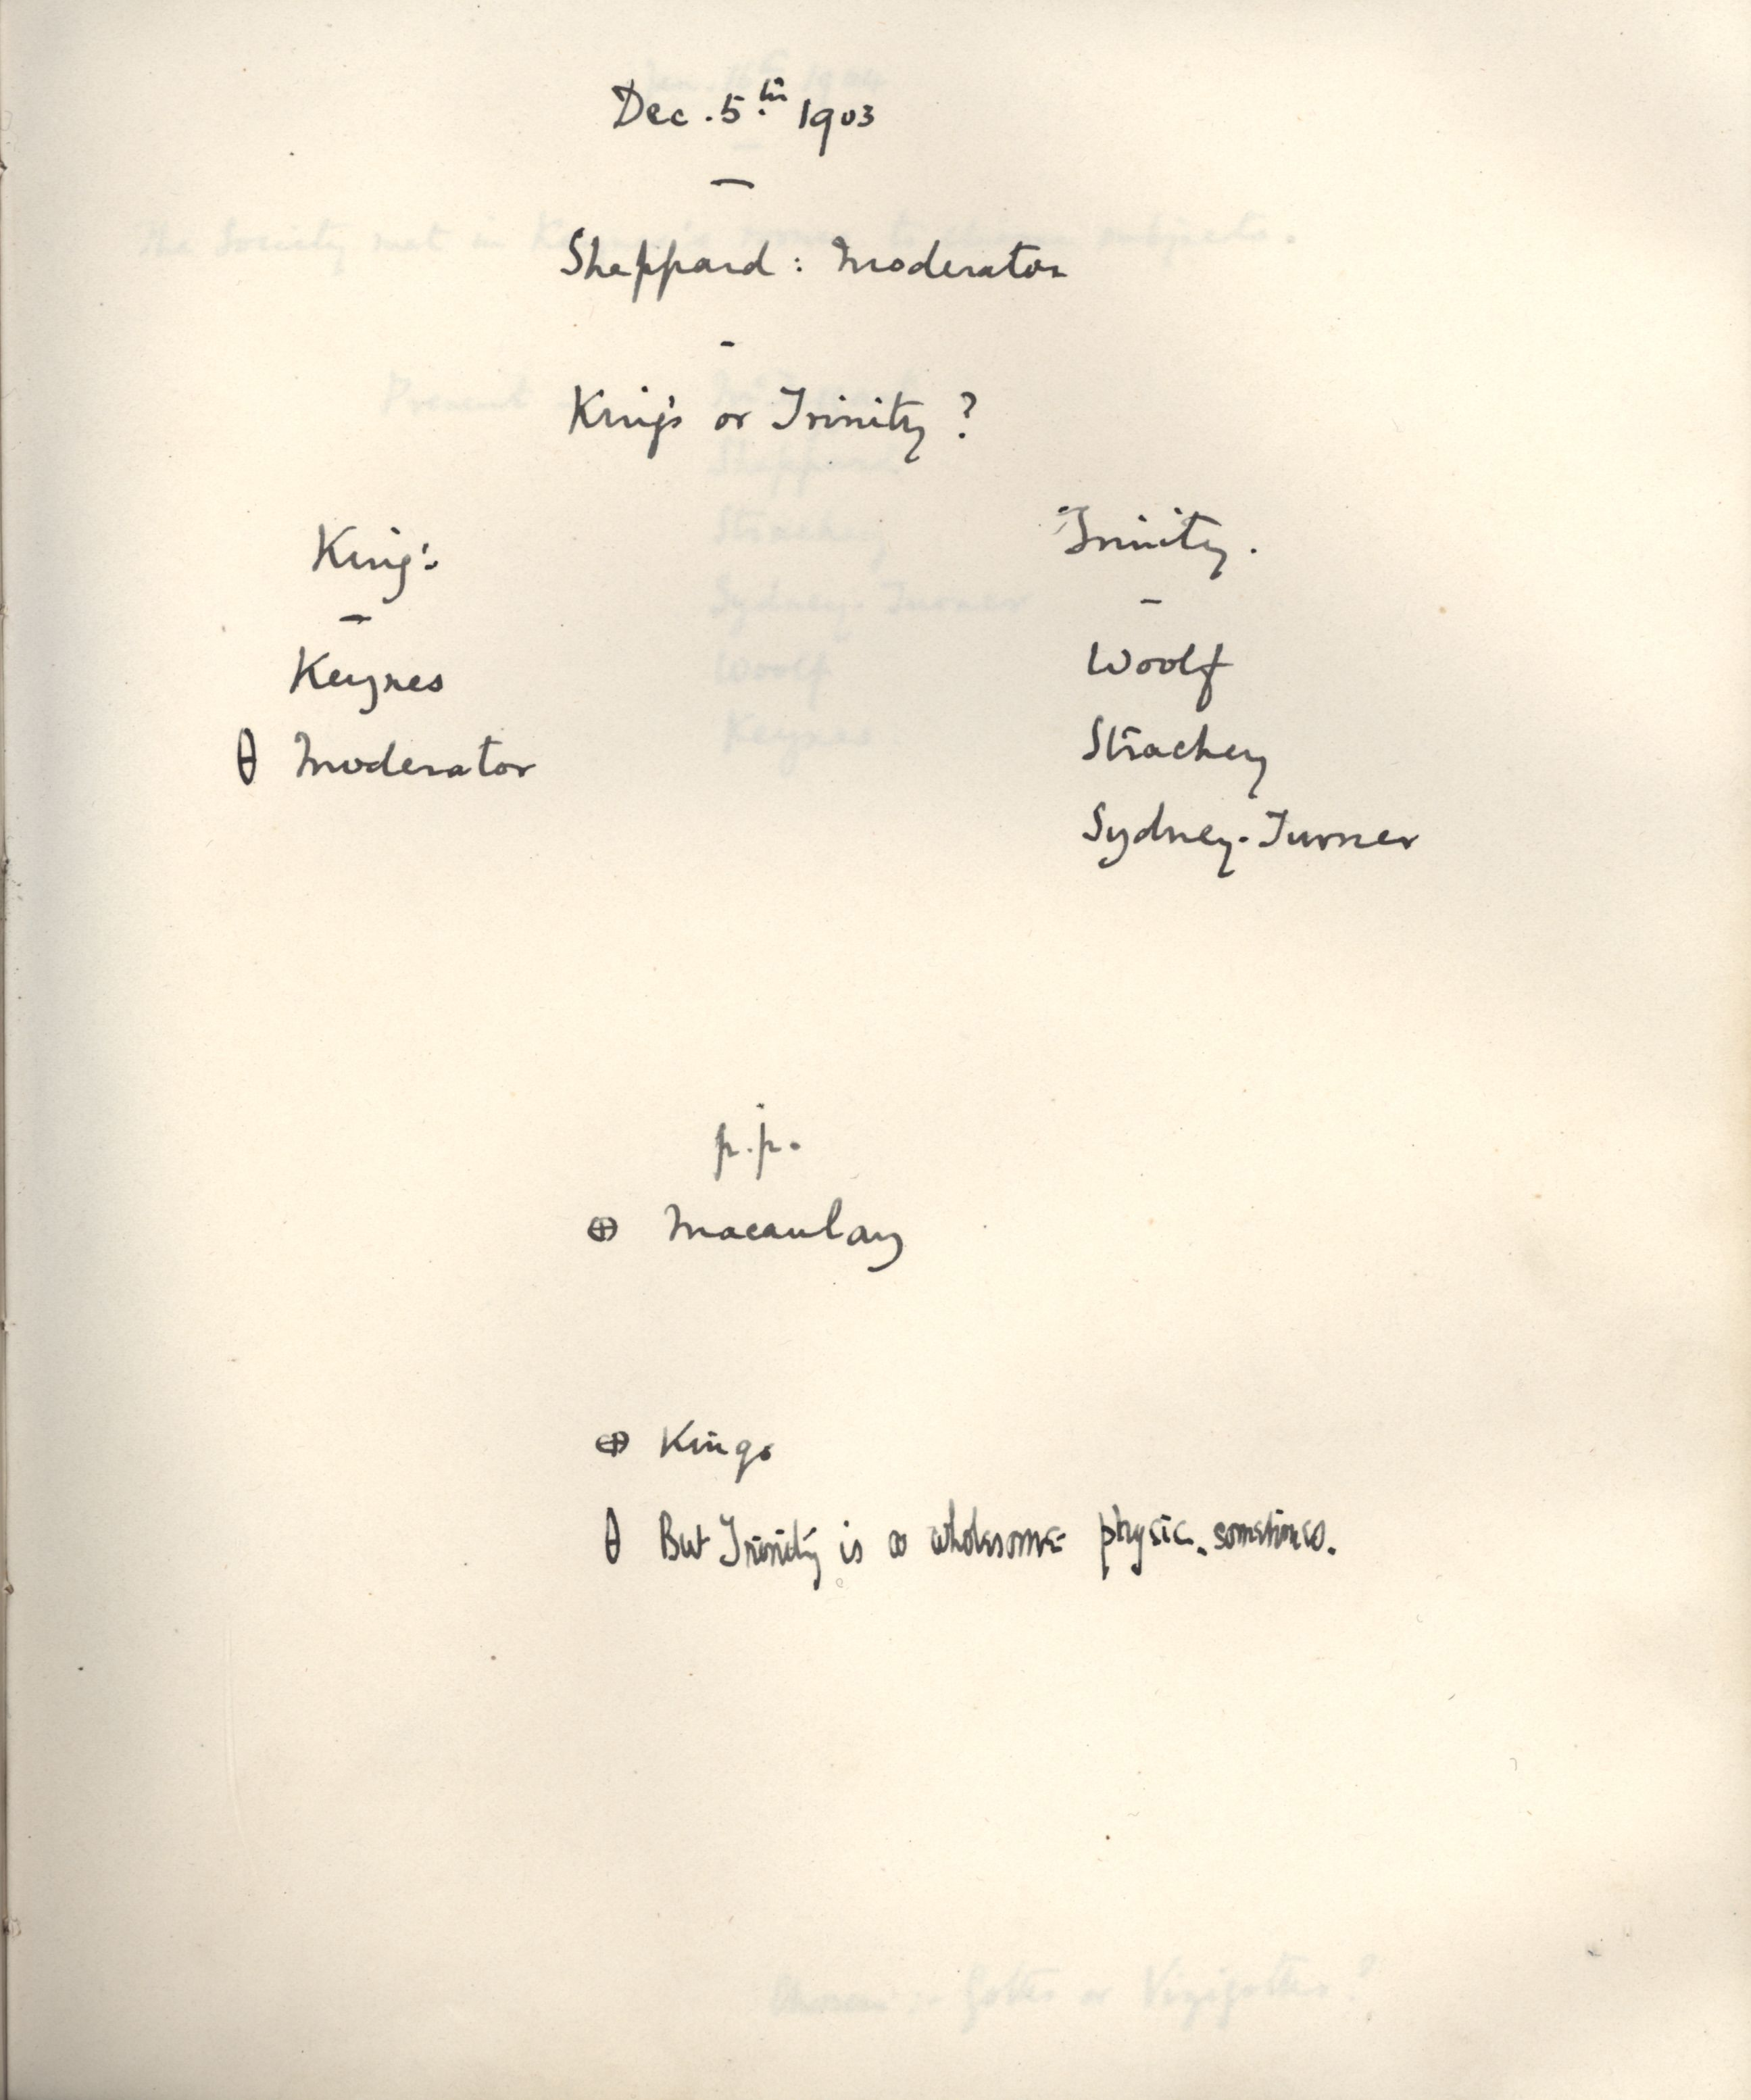 Minutes of a meeting in which Sheppard asked 'King's or Trinity?' [KCAS/39/1/14, 5 December 1903]